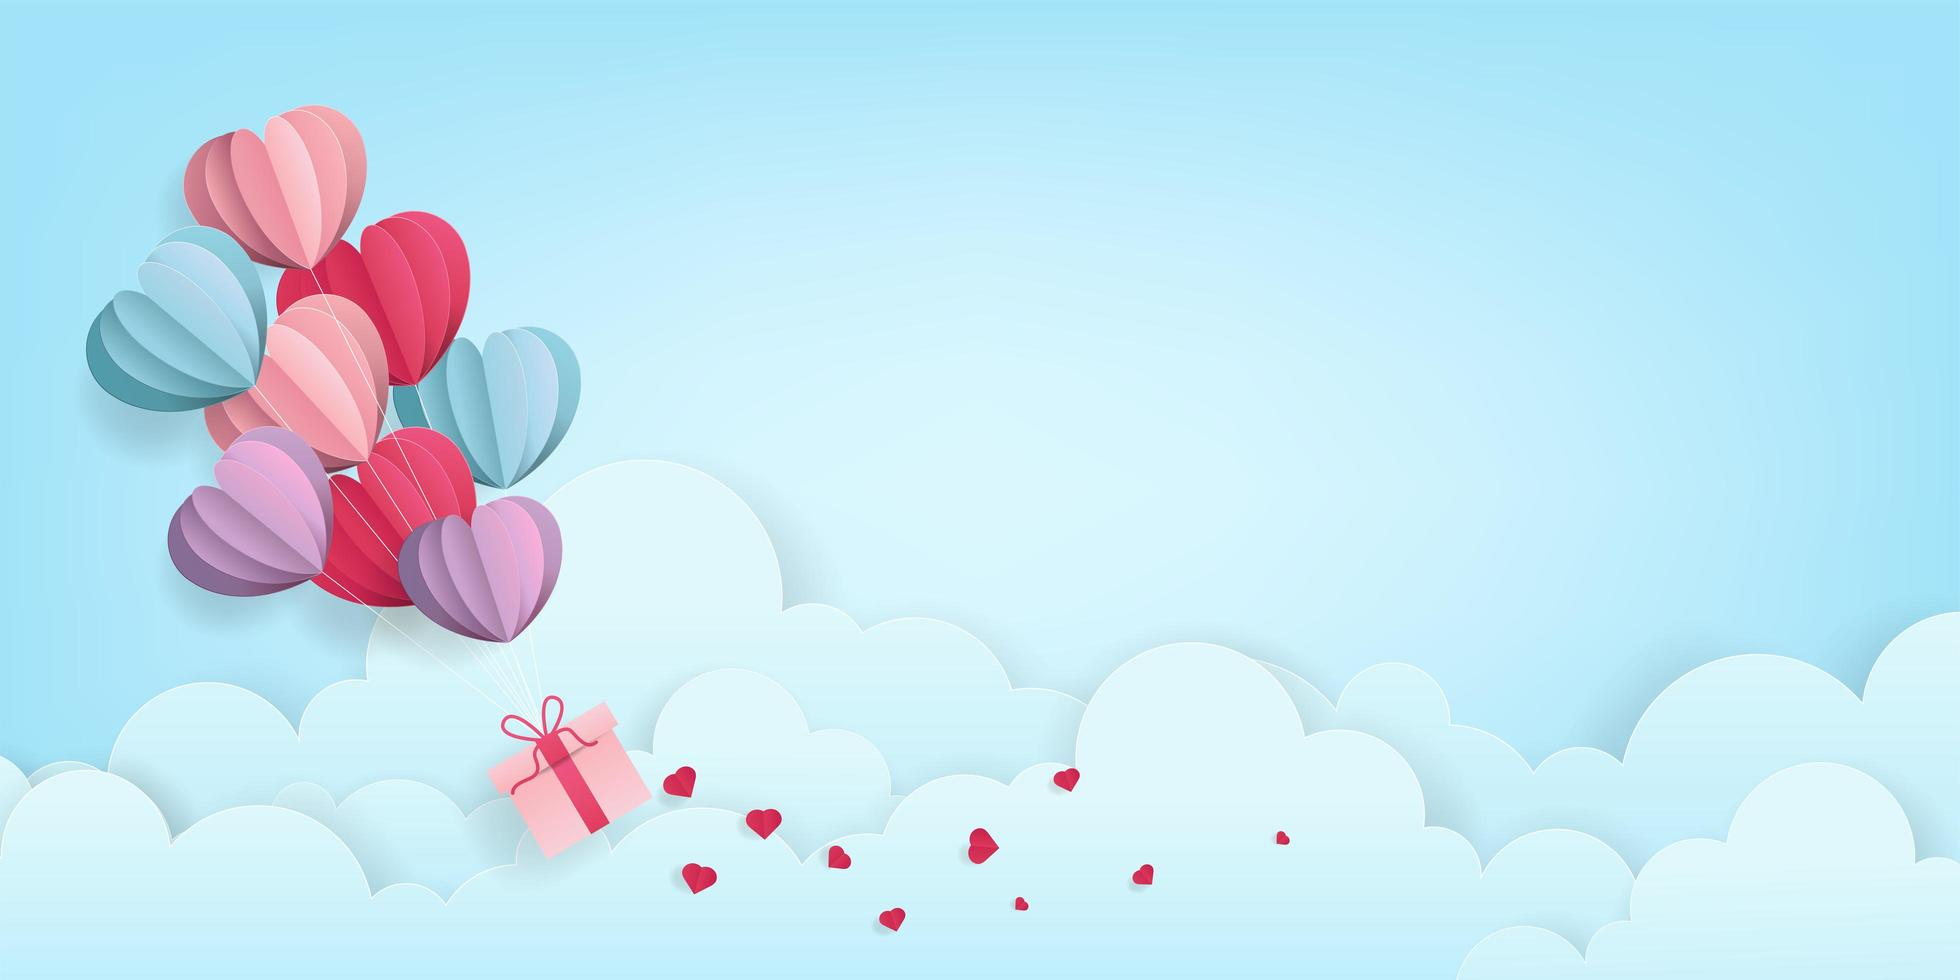 Valentine's Heart Balloons Carrying Gift on Sky Background